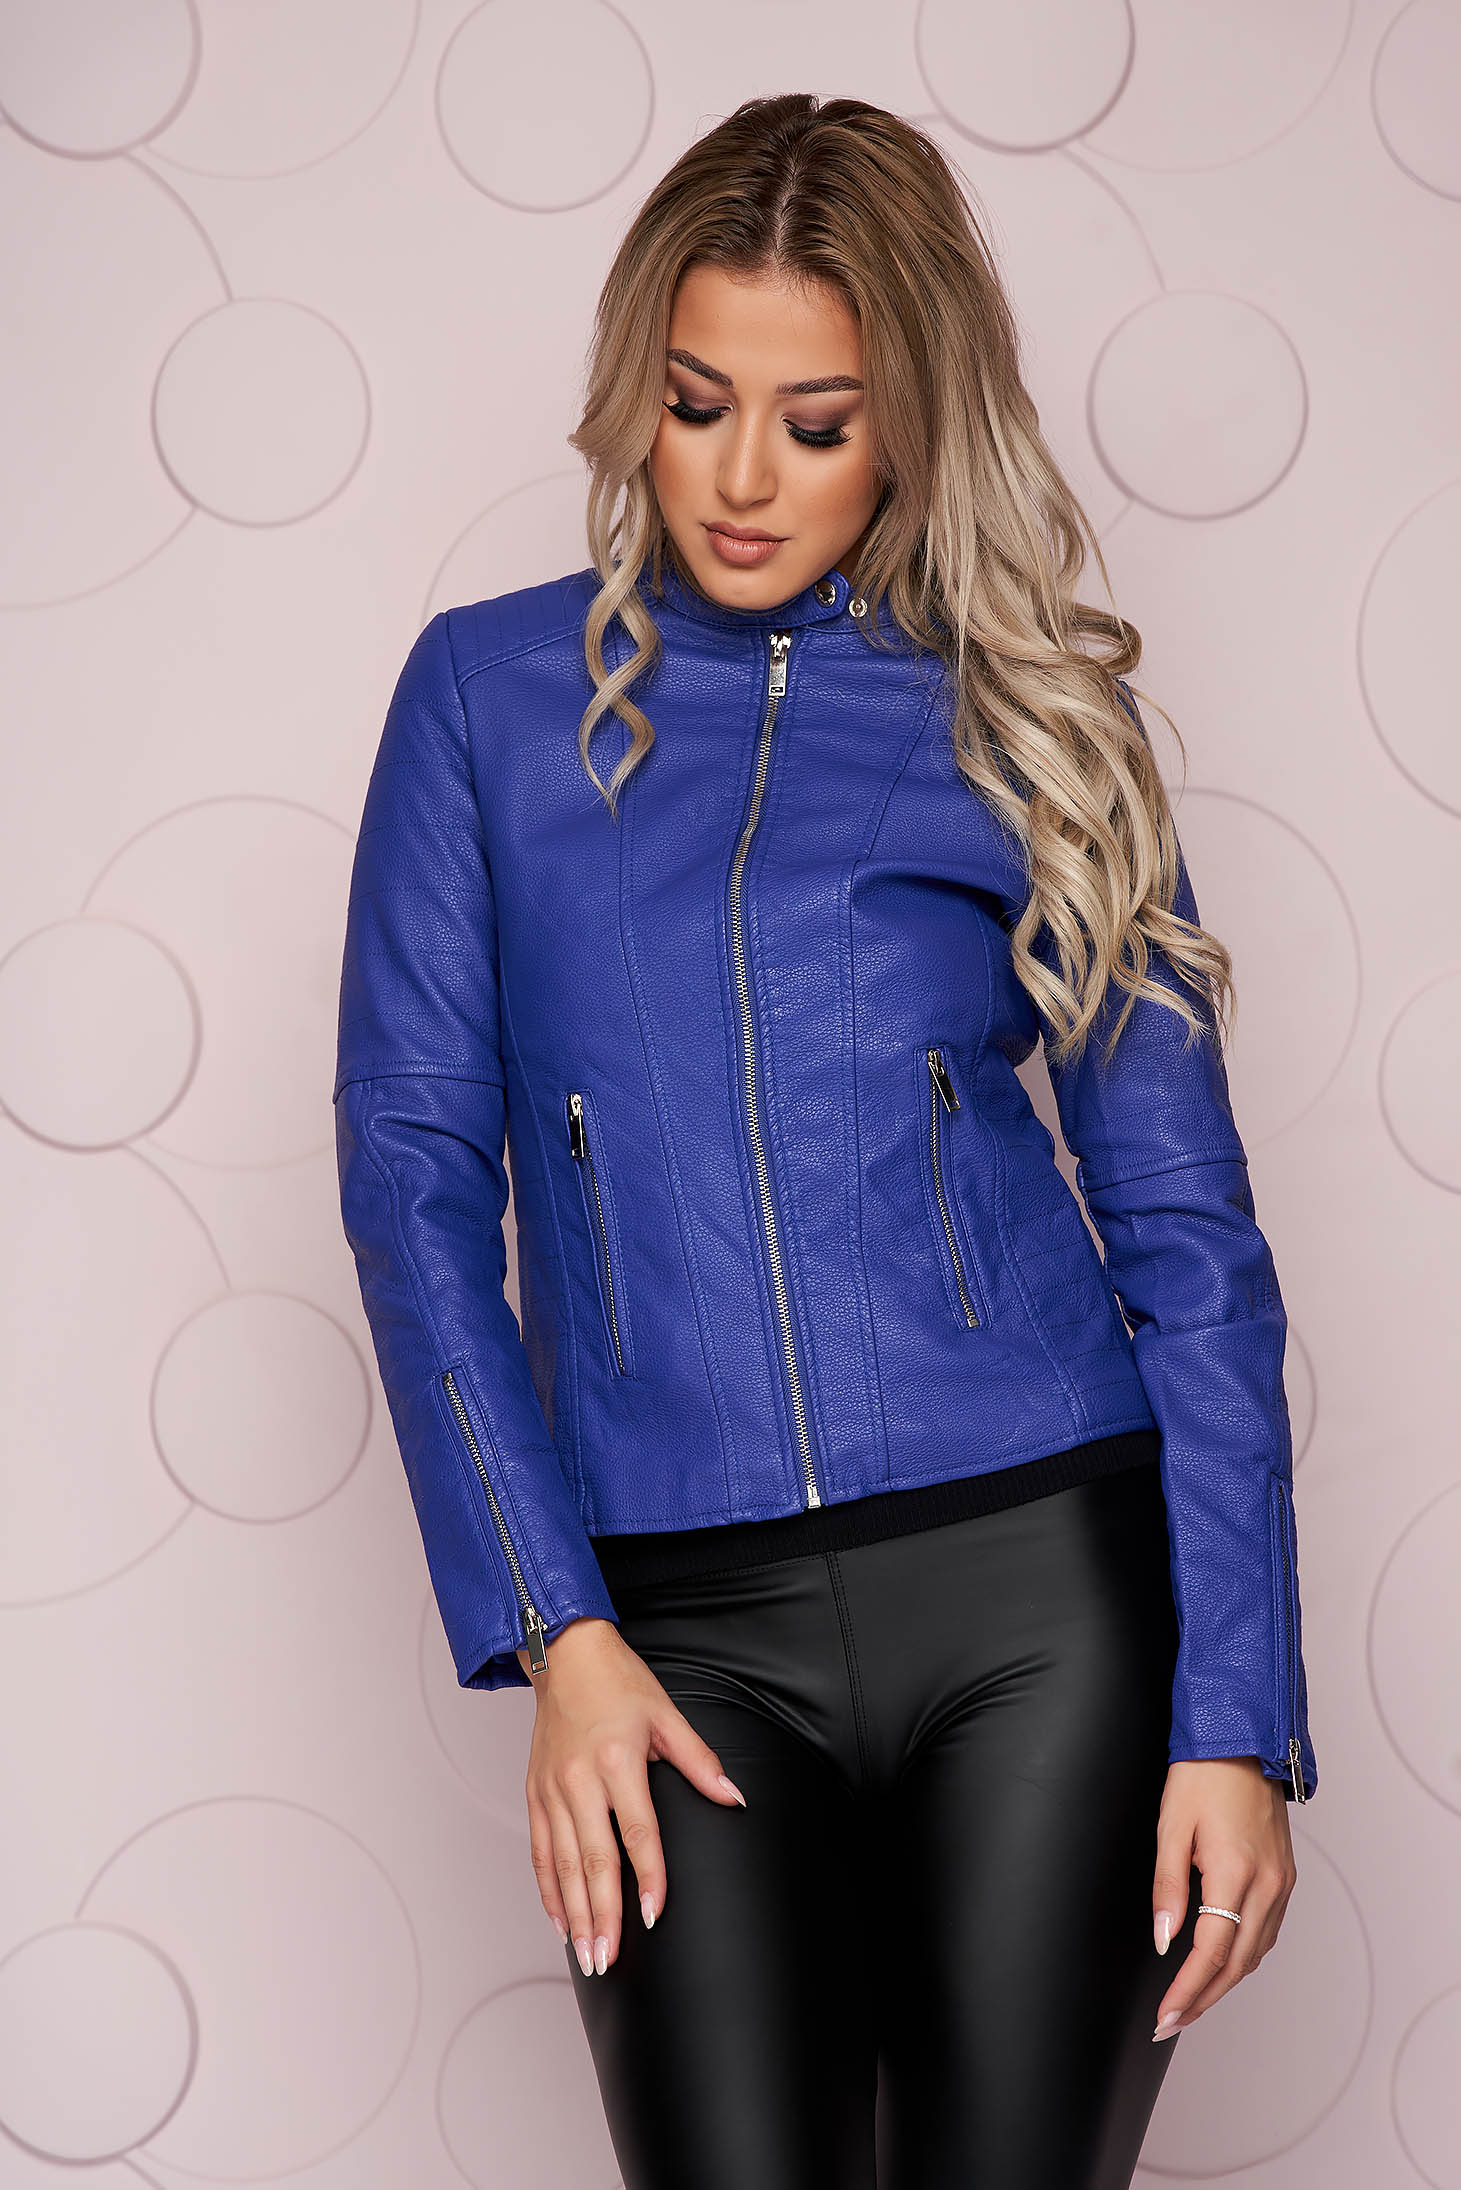 Blue jacket tented short cut from ecological leather thick fabric with zipper details pockets